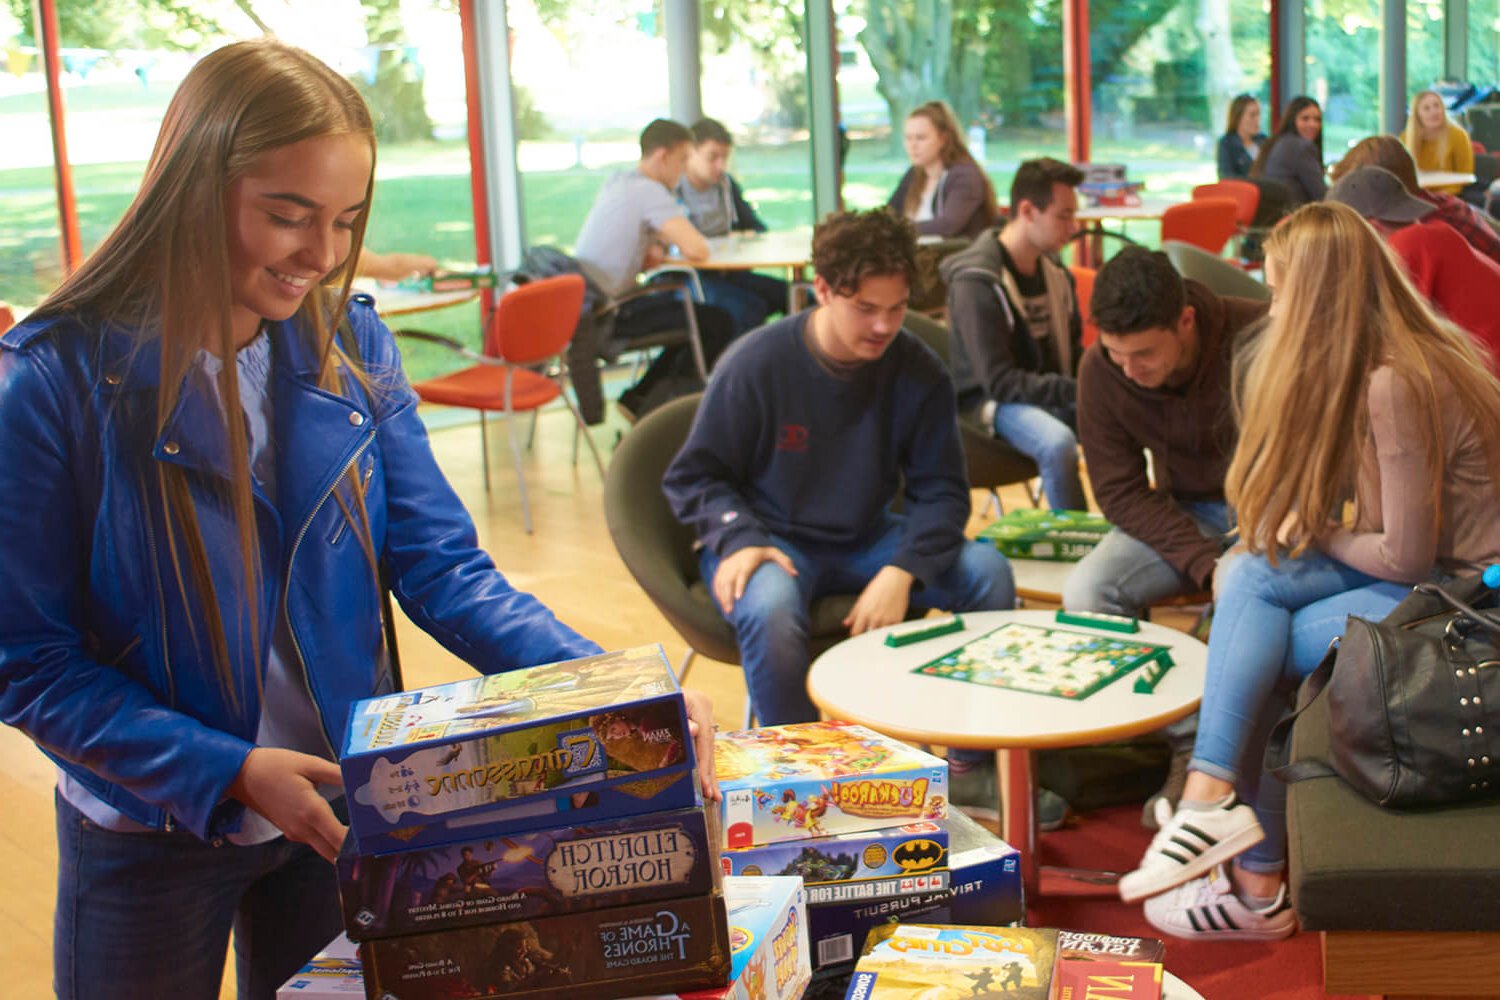 A student looks through the choice of board games at the Games Cafe, hosted in the Reds Bar in the Arts Centre.